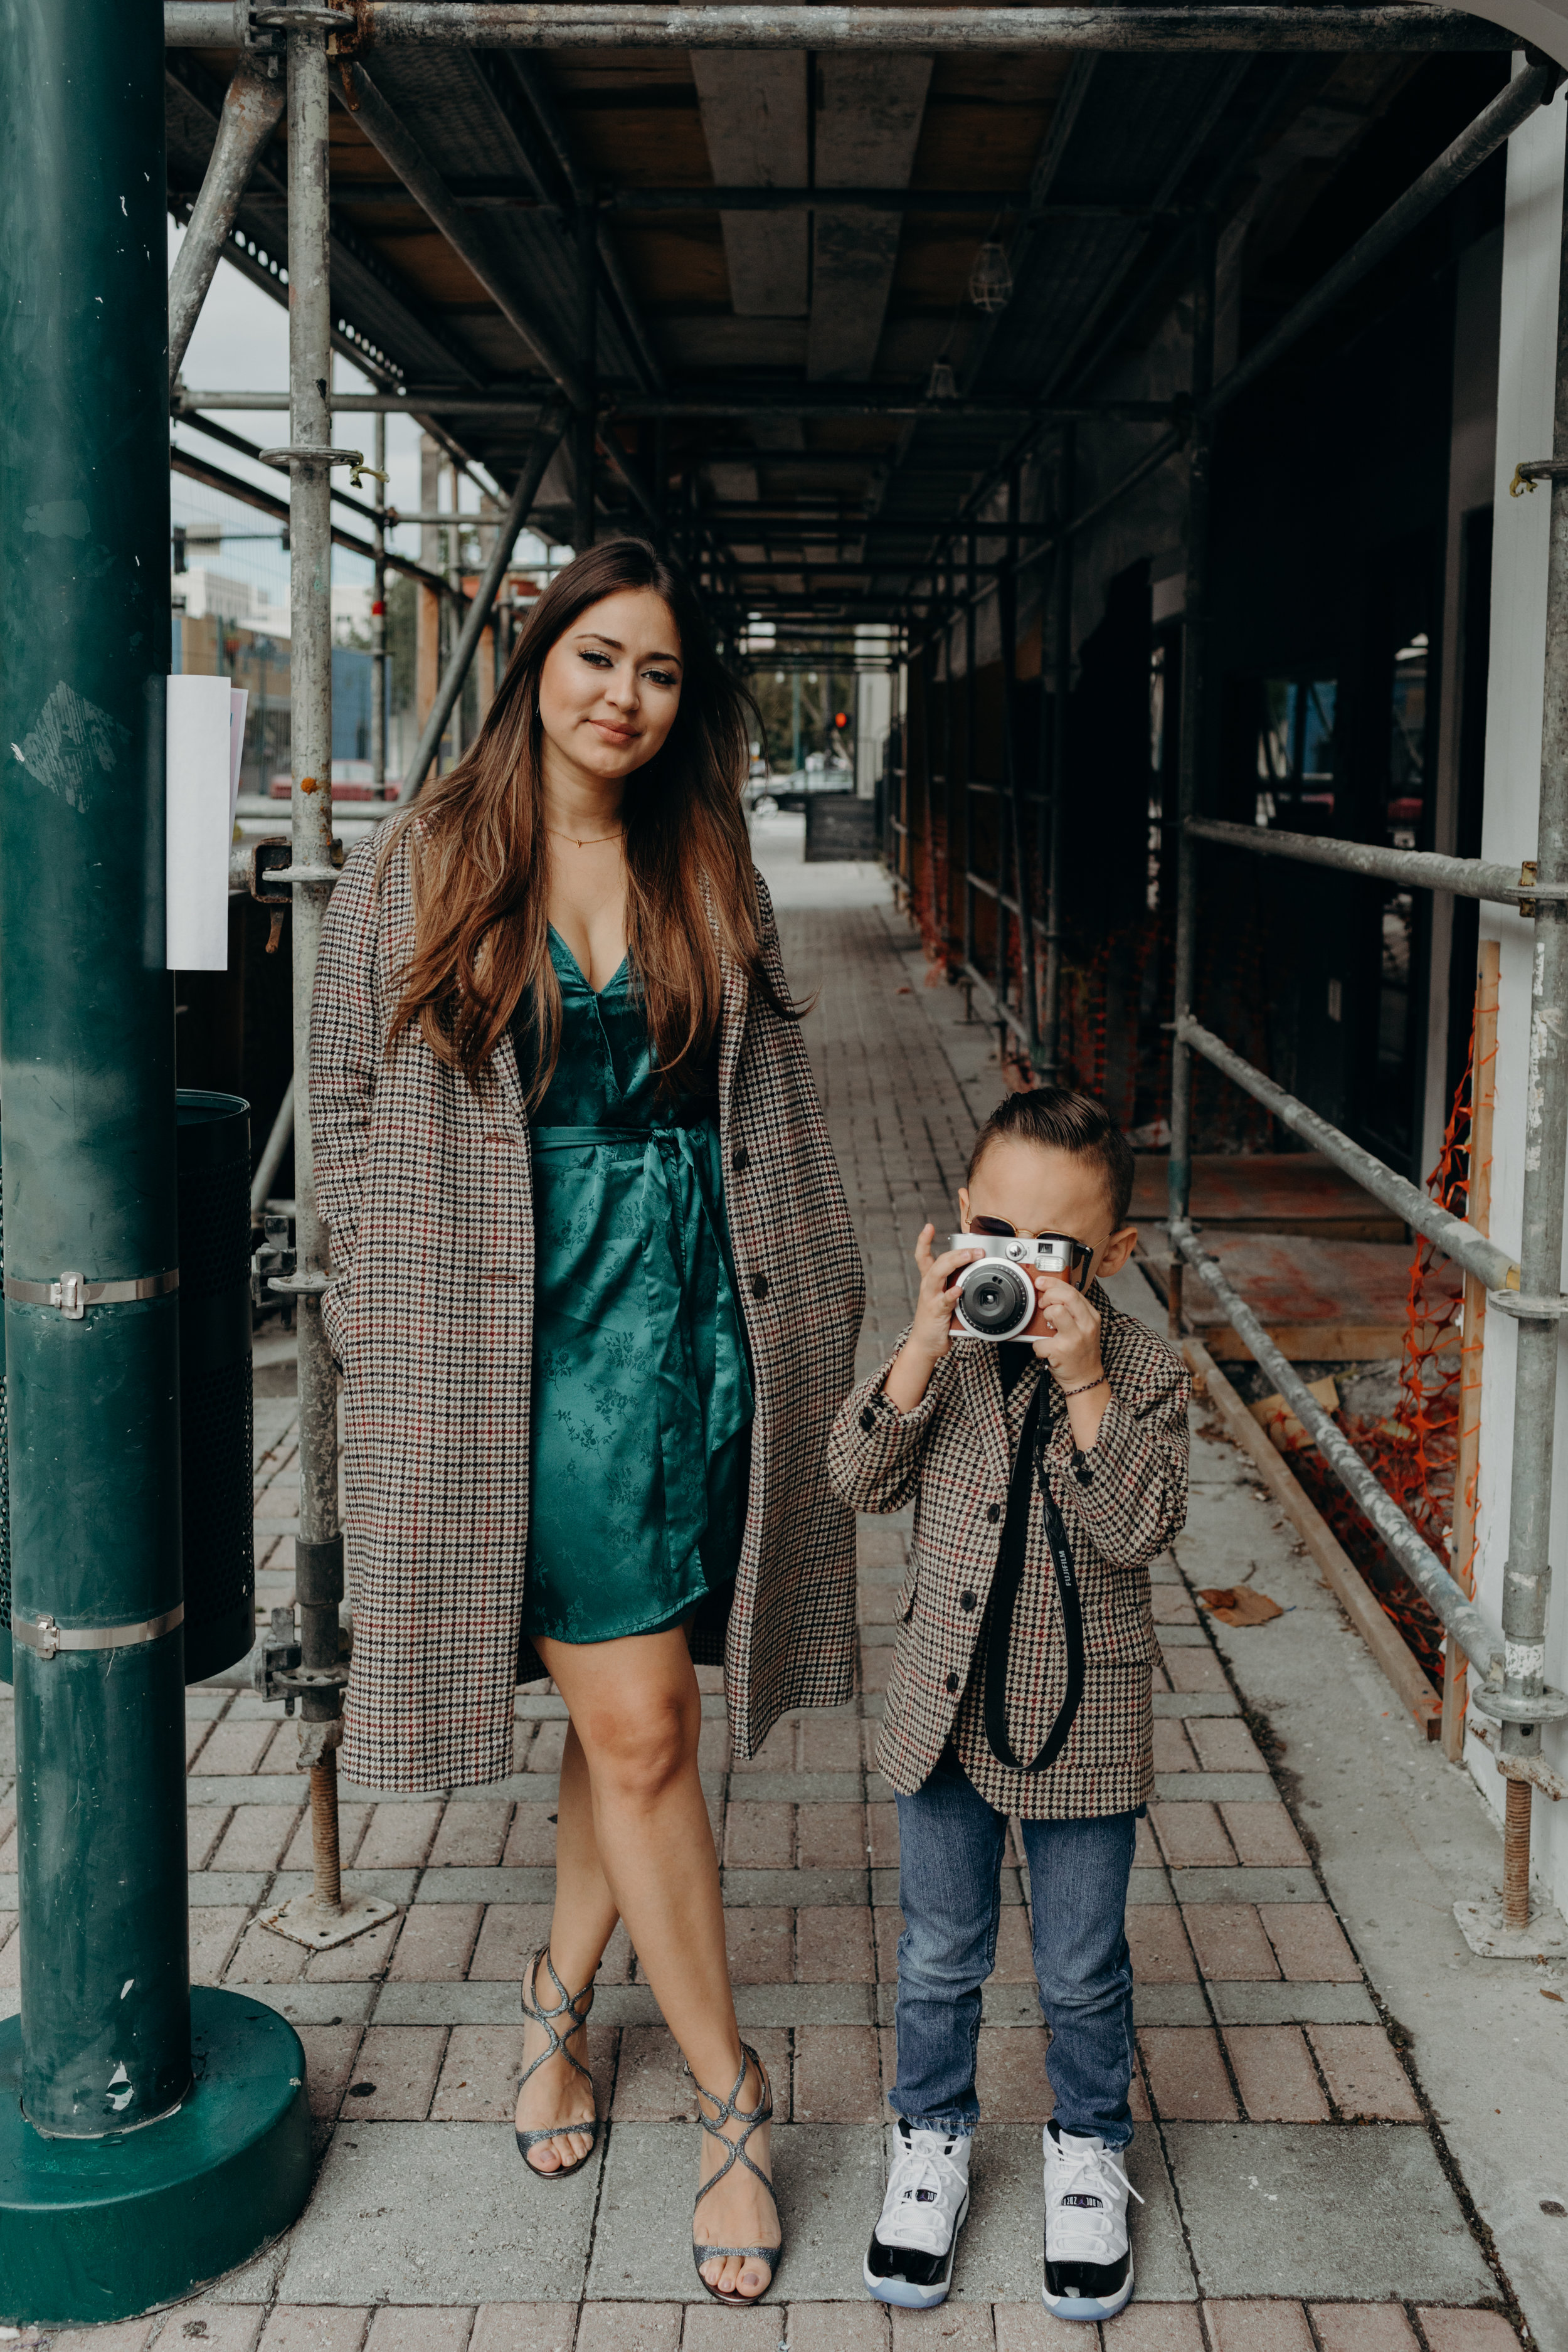 fashion mama | mommy and me | Matching jackets | concords | Jimmy choo | Downtown Orlando | Captured by Vanessa Boy |Vanessaboy.com (100 of 1).jpg